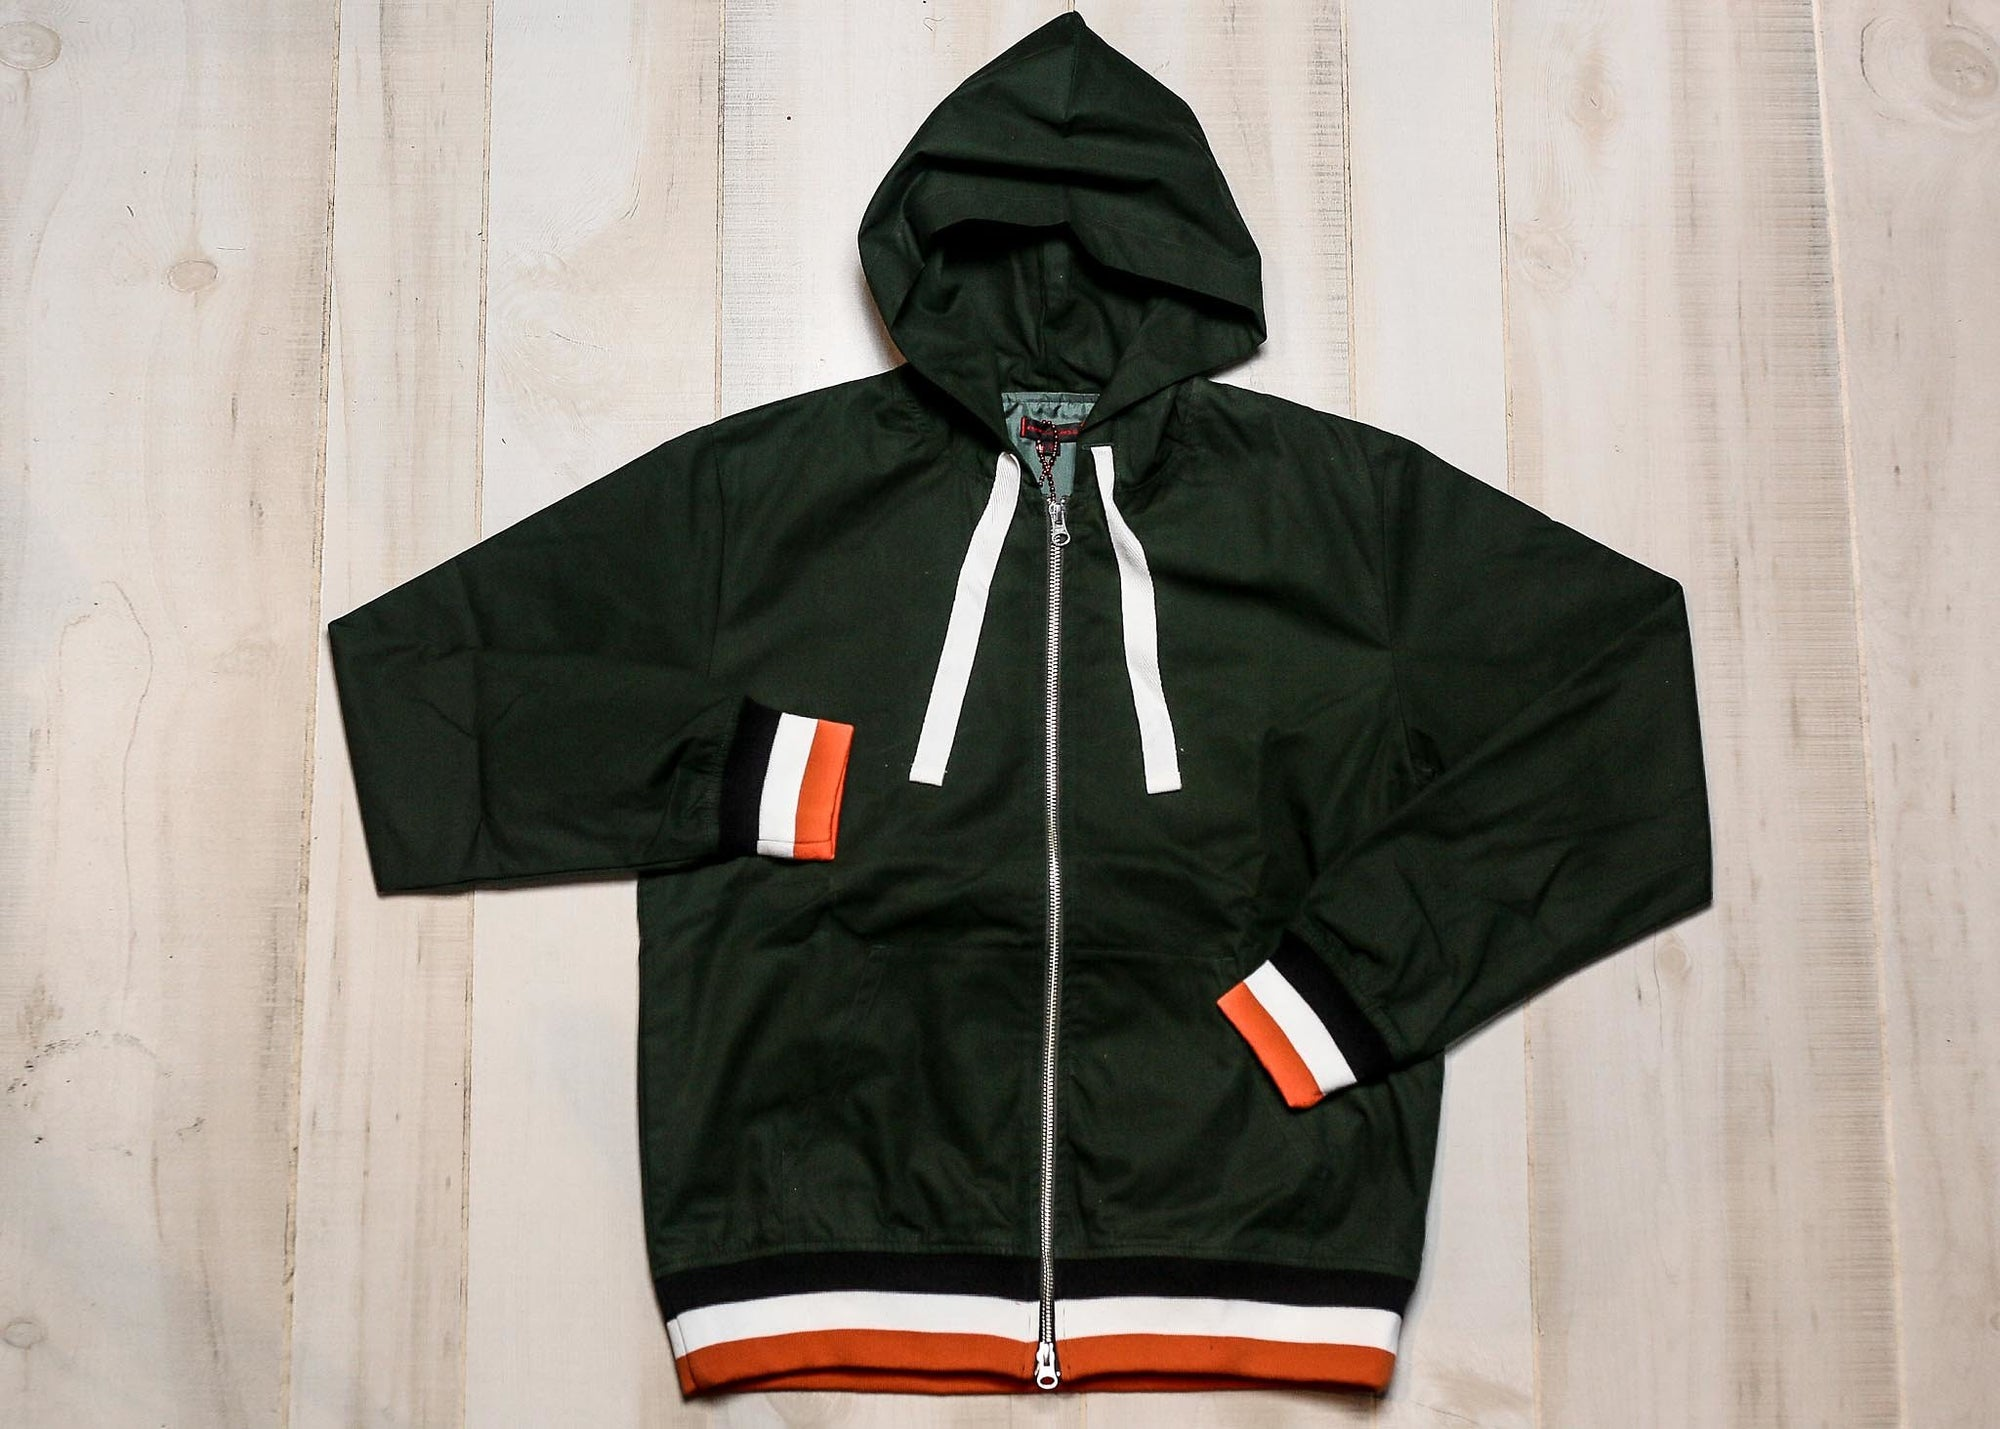 CLOT - MILITARY ZIP UP HOODIE